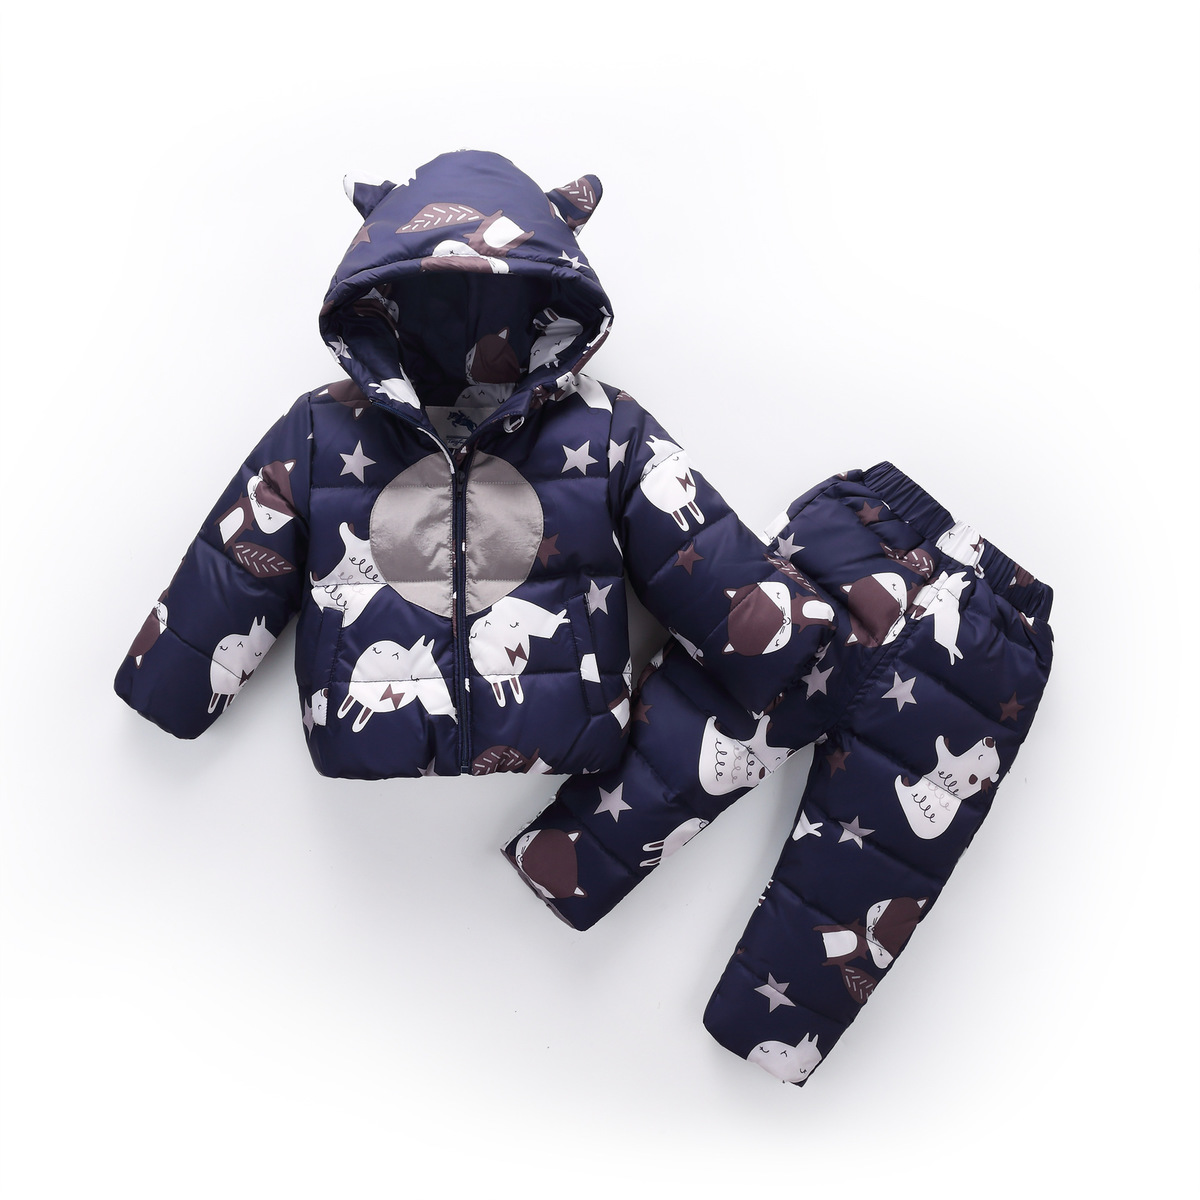 Baby Girl Winter Clothes Cute Children Boy Clothing Sets Down Parkas With Hooded Tracksuit For Girls Jacket Pants 2Pcs 0 3Y